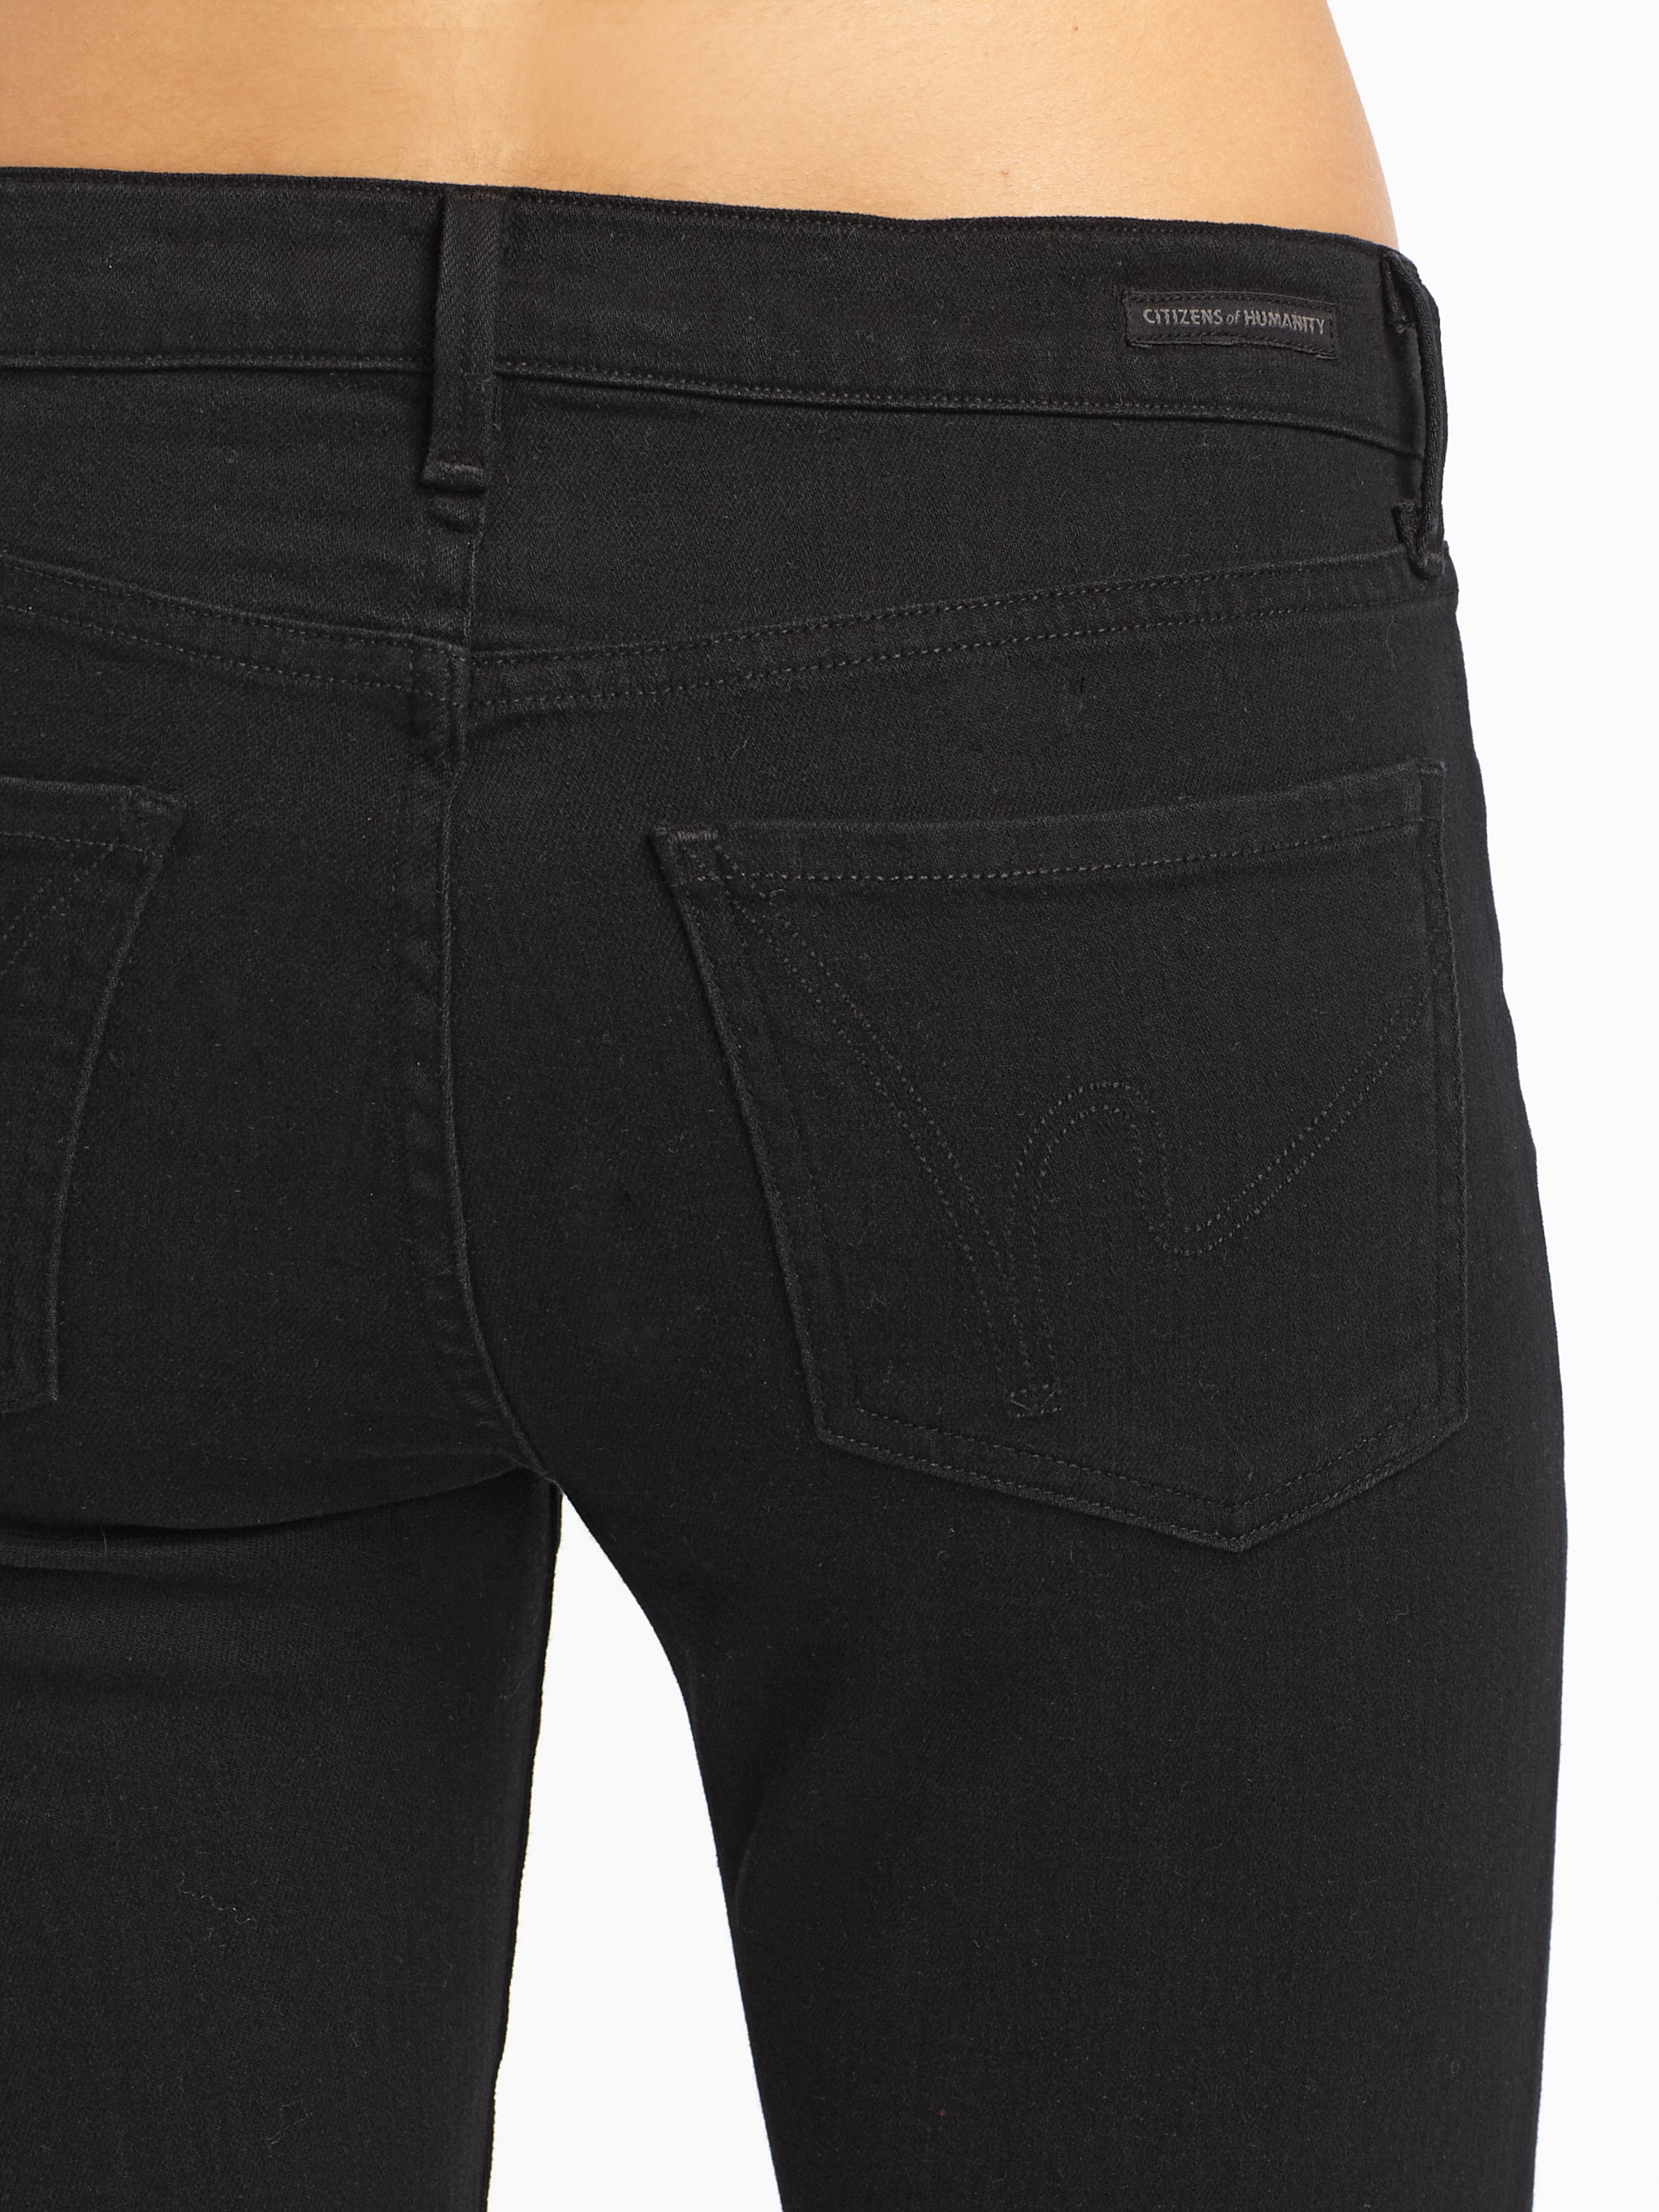 Citizens of humanity black bootcut jeans